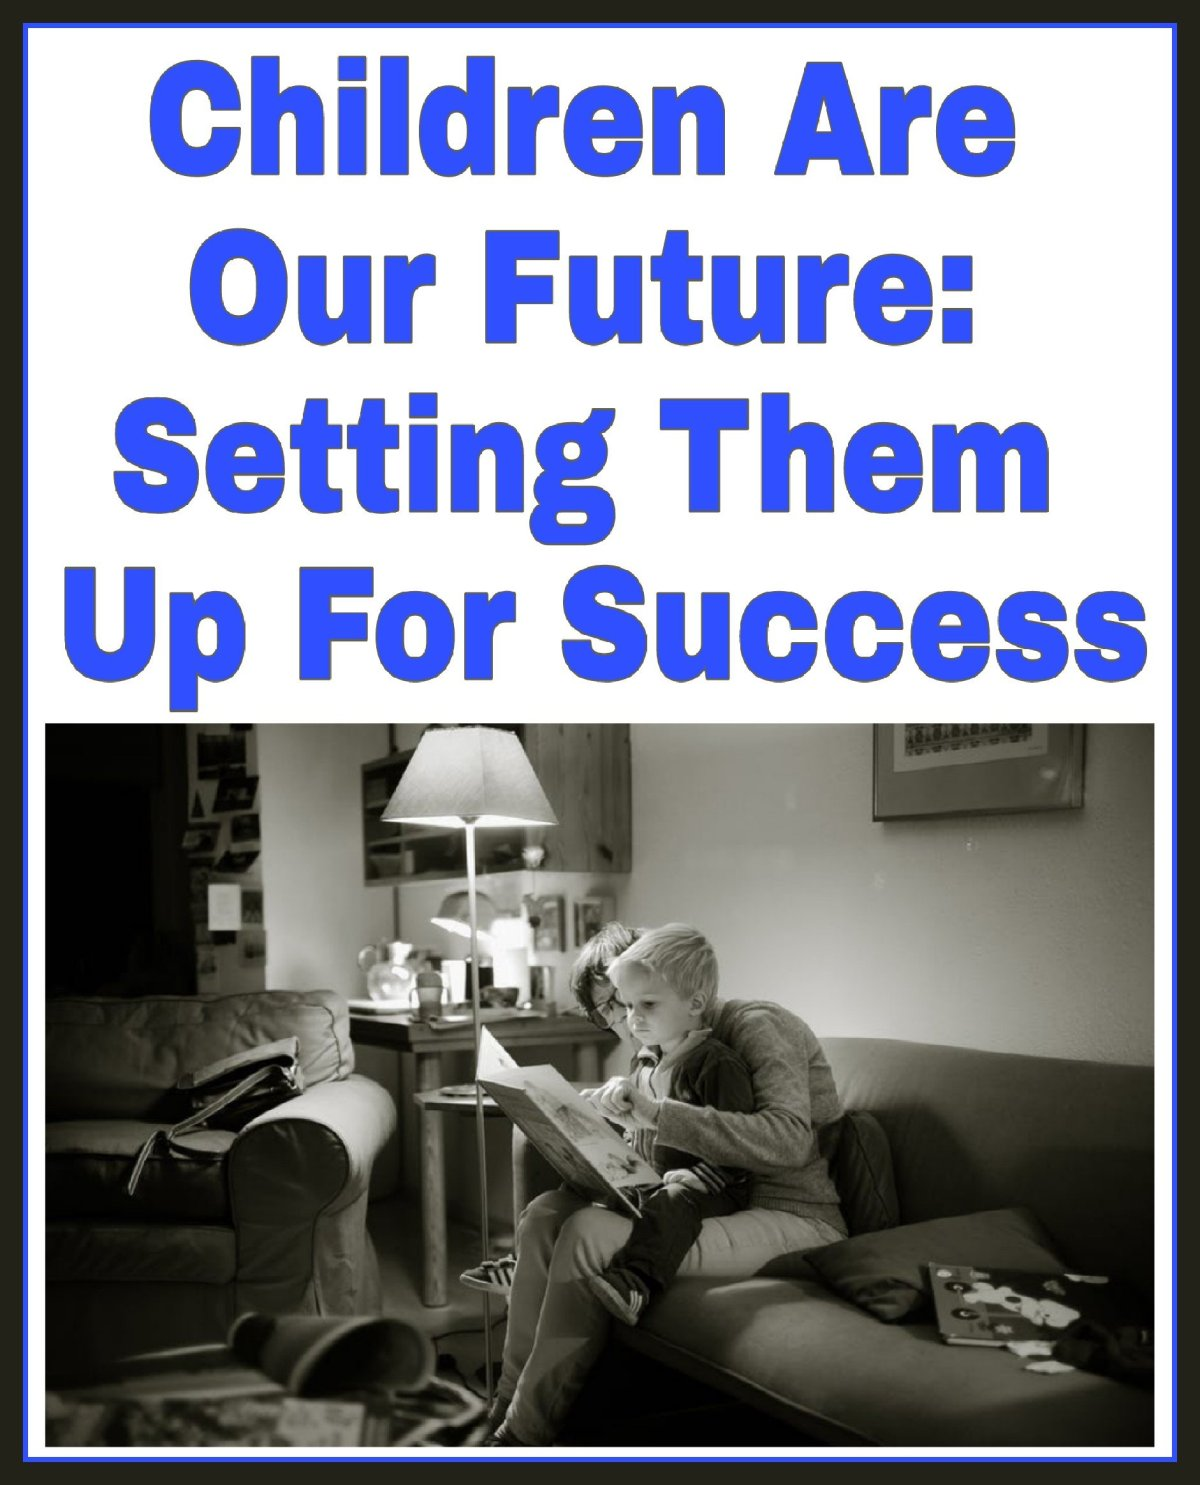 Children Are Our Future: Setting Them Up For Success